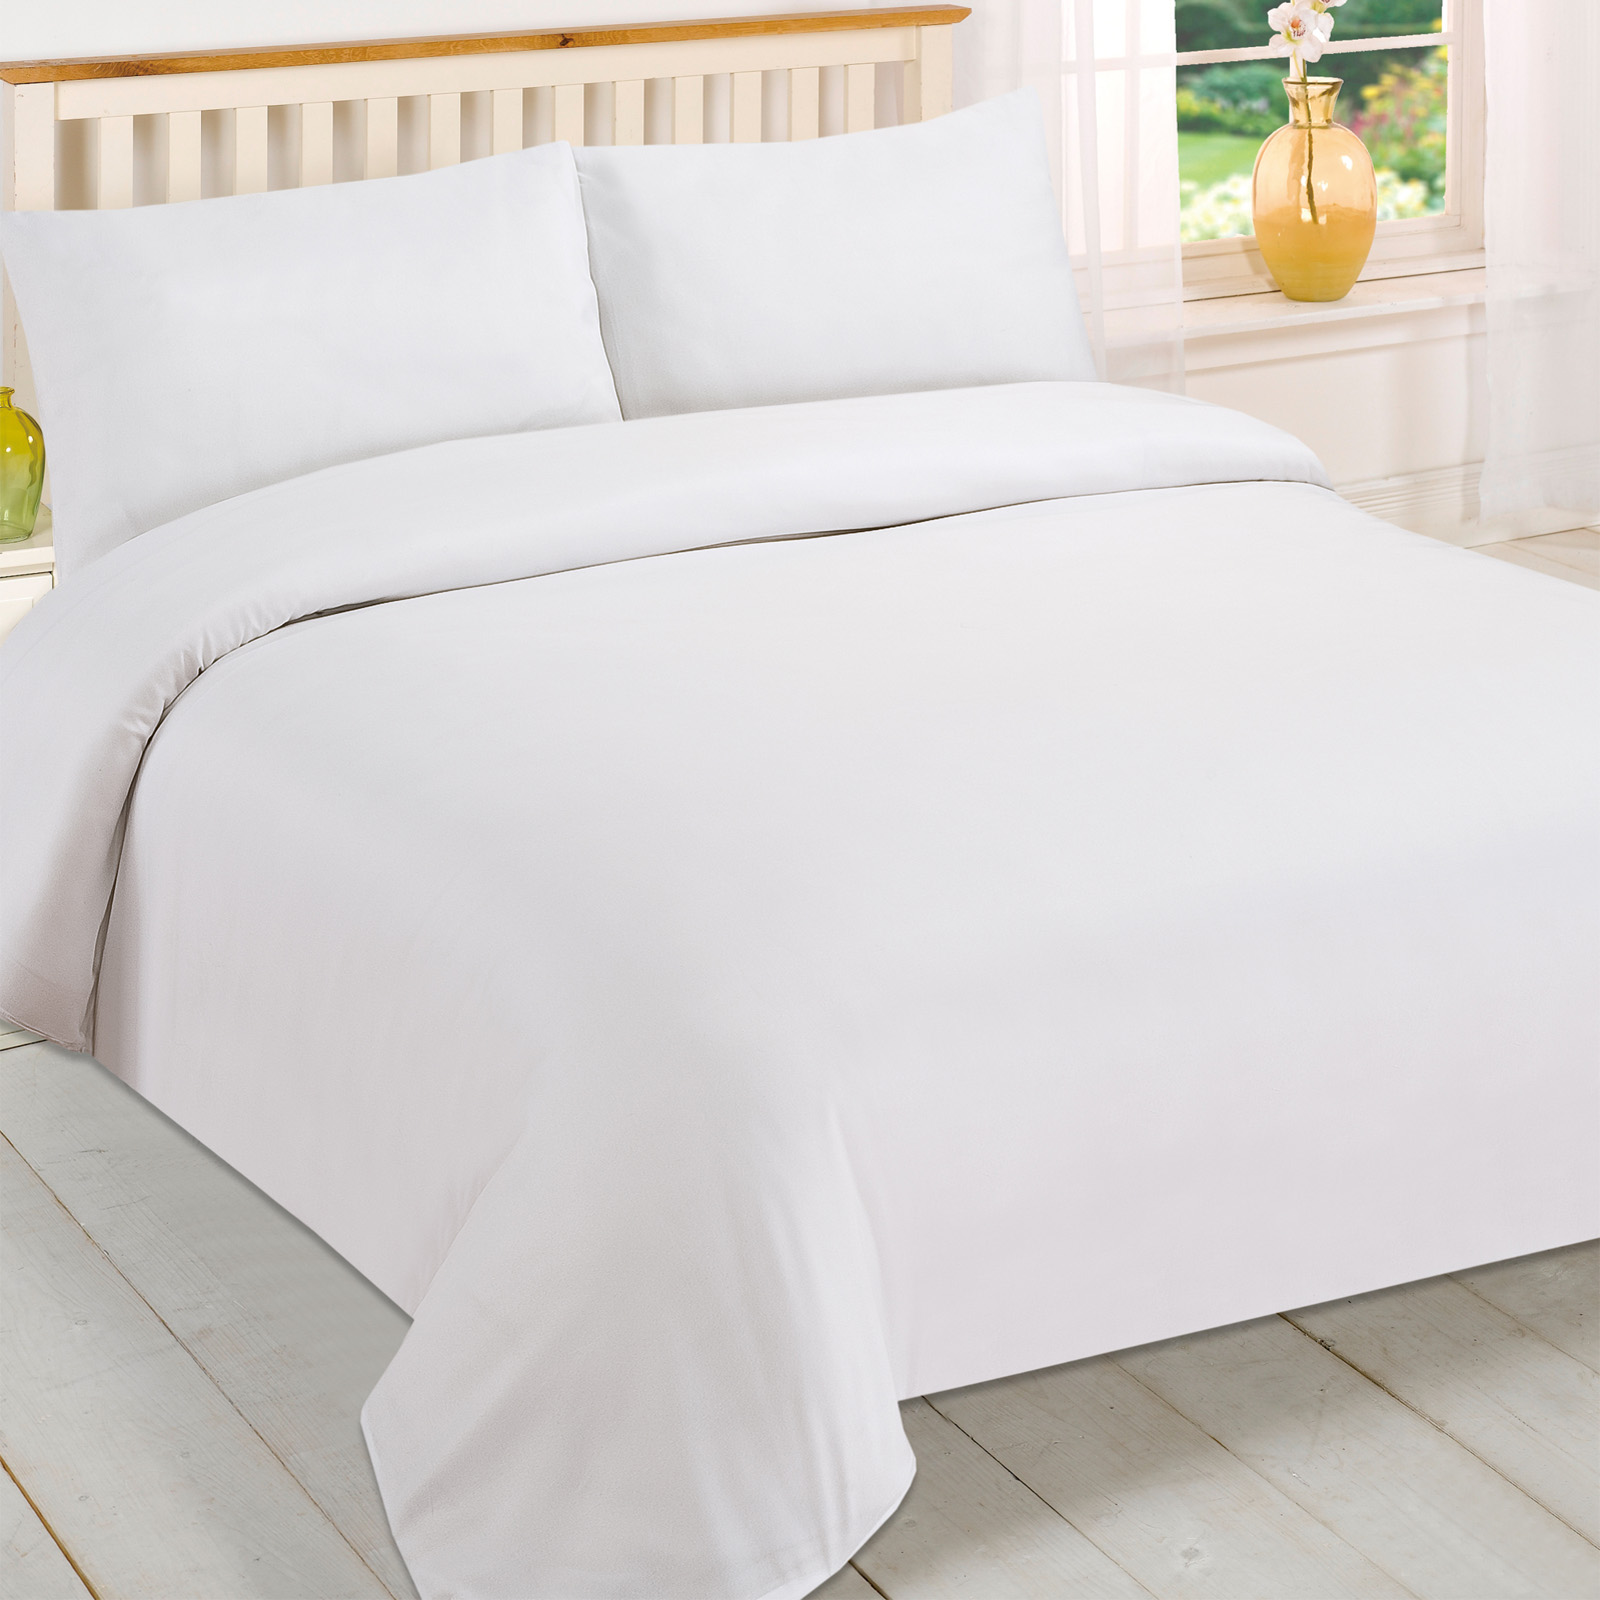 White Duvet Cover King Brentfords Plain White Duvet Cover And Pillowcase Bedding